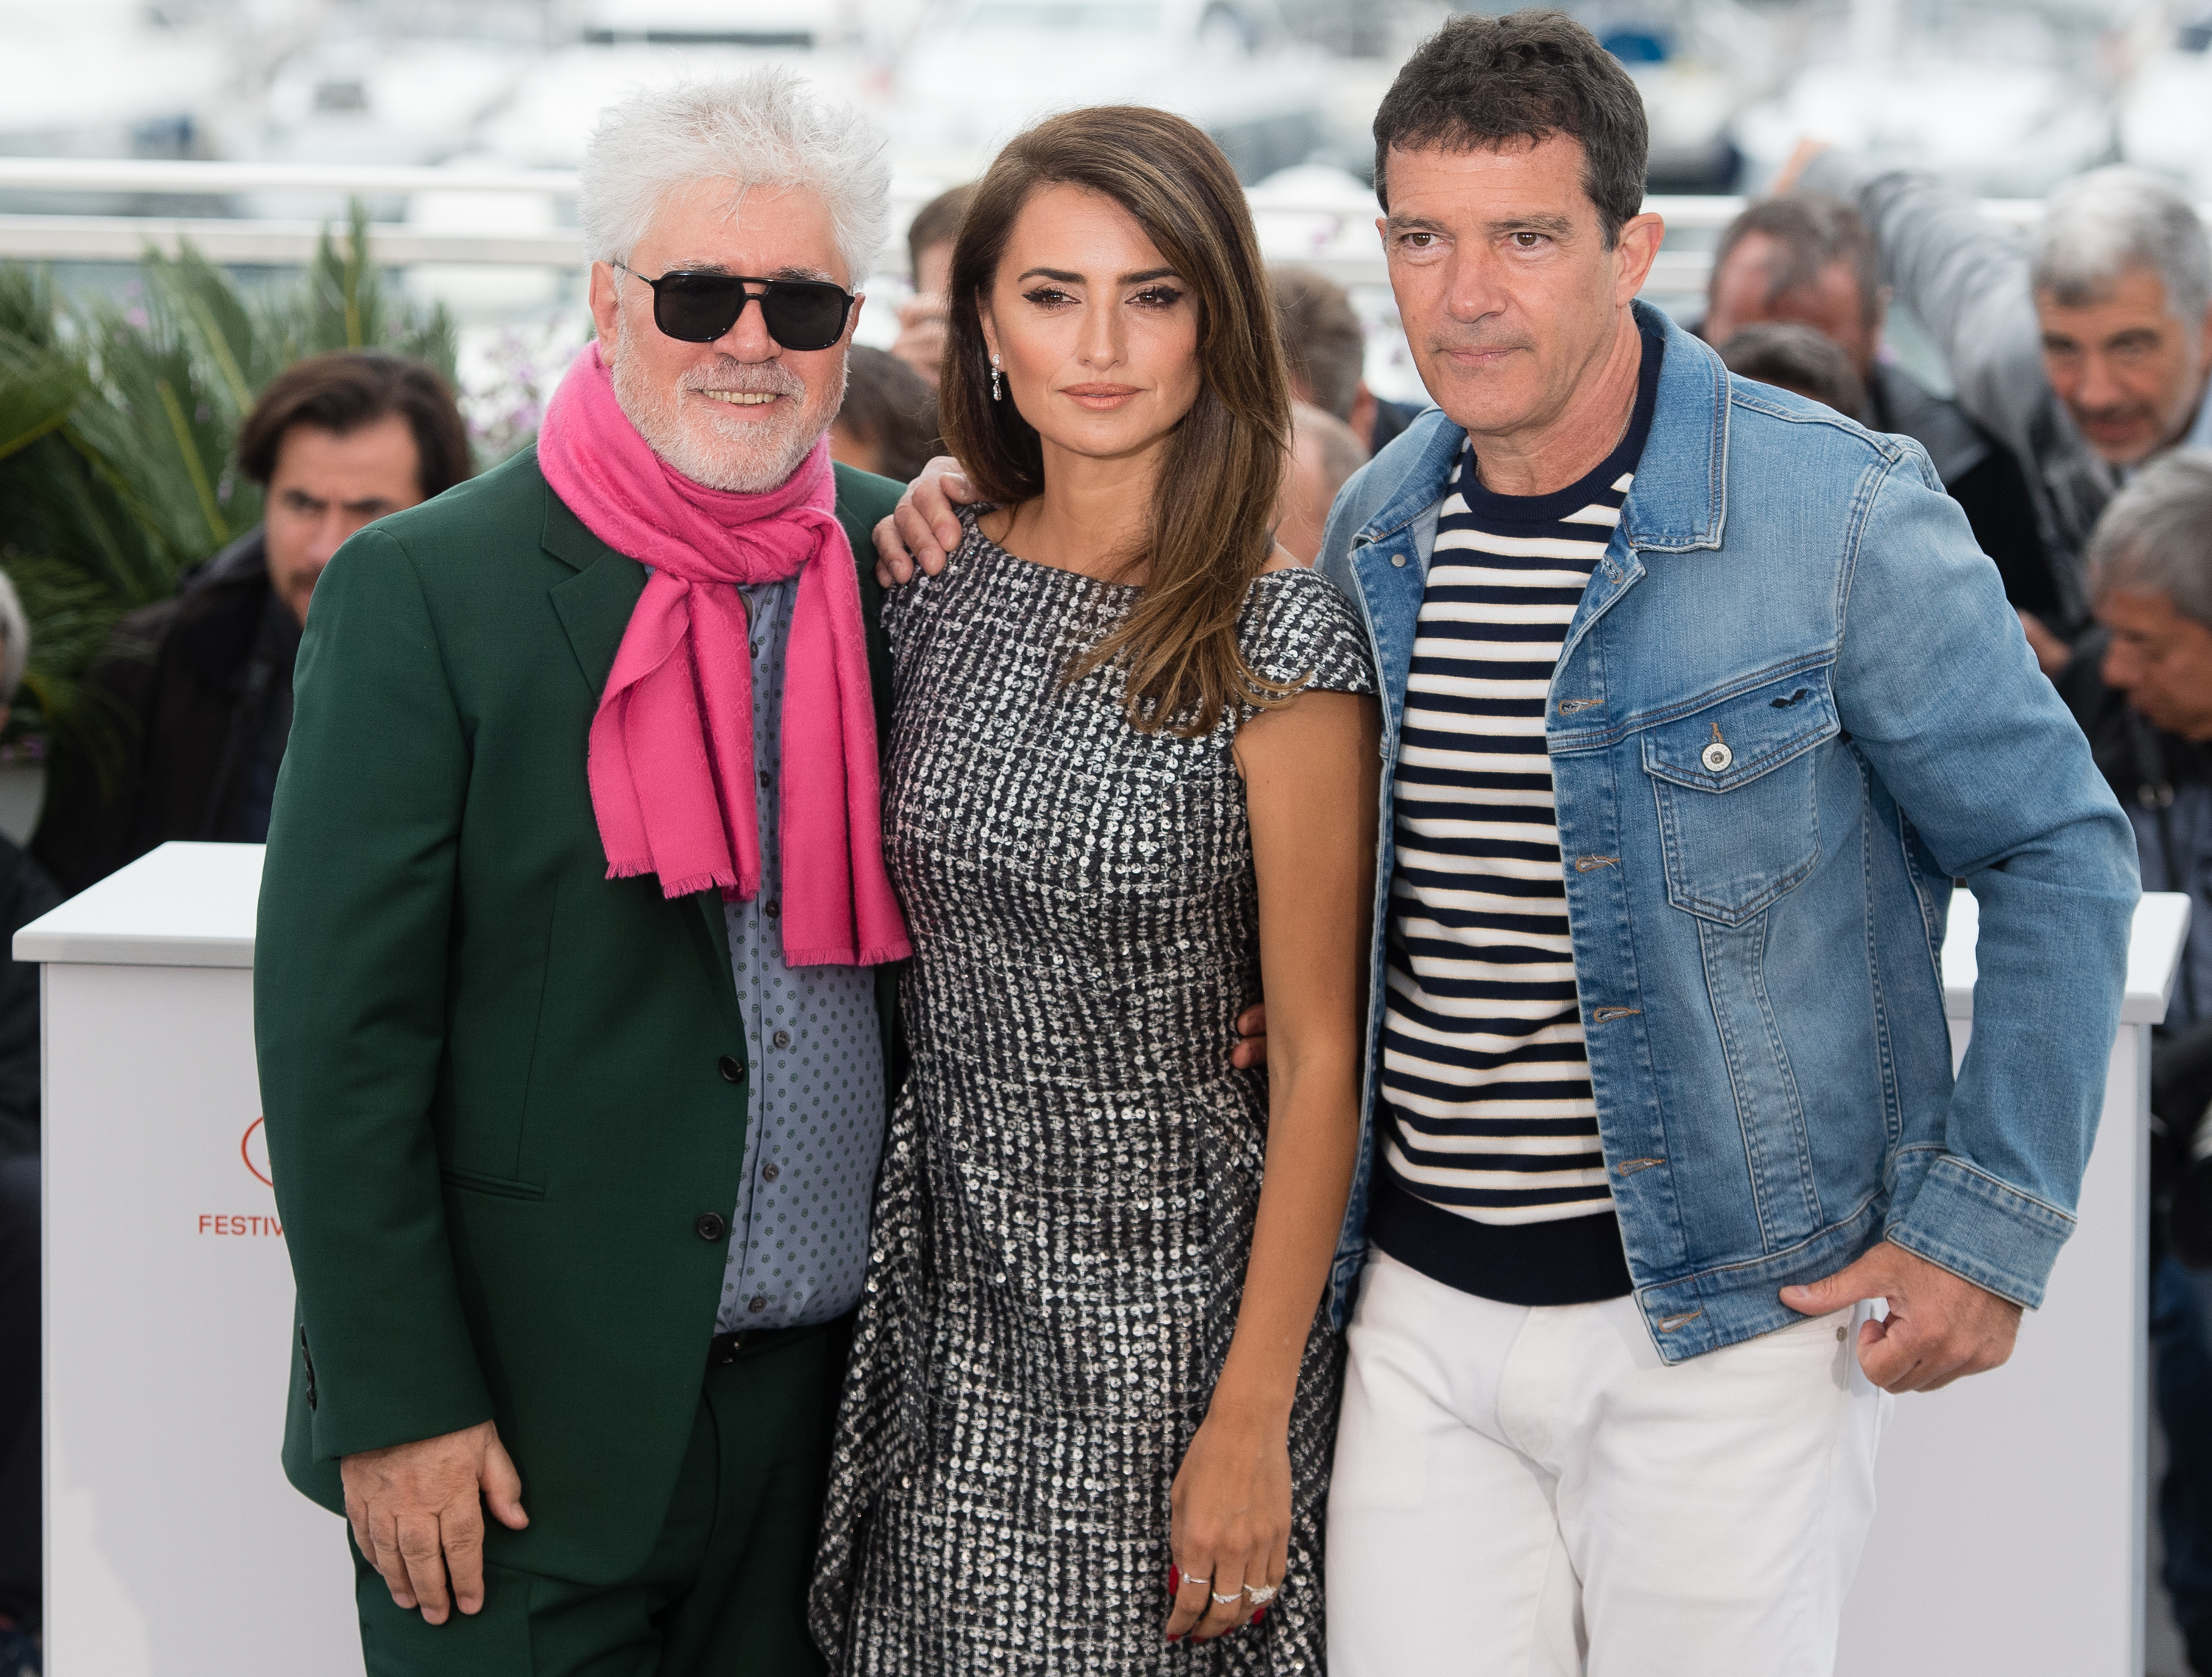 Pedro Almodovar, Penelope Cruz and Antonio Banderas during the 72nd annual Cannes Film Festival on May 18, 2019.